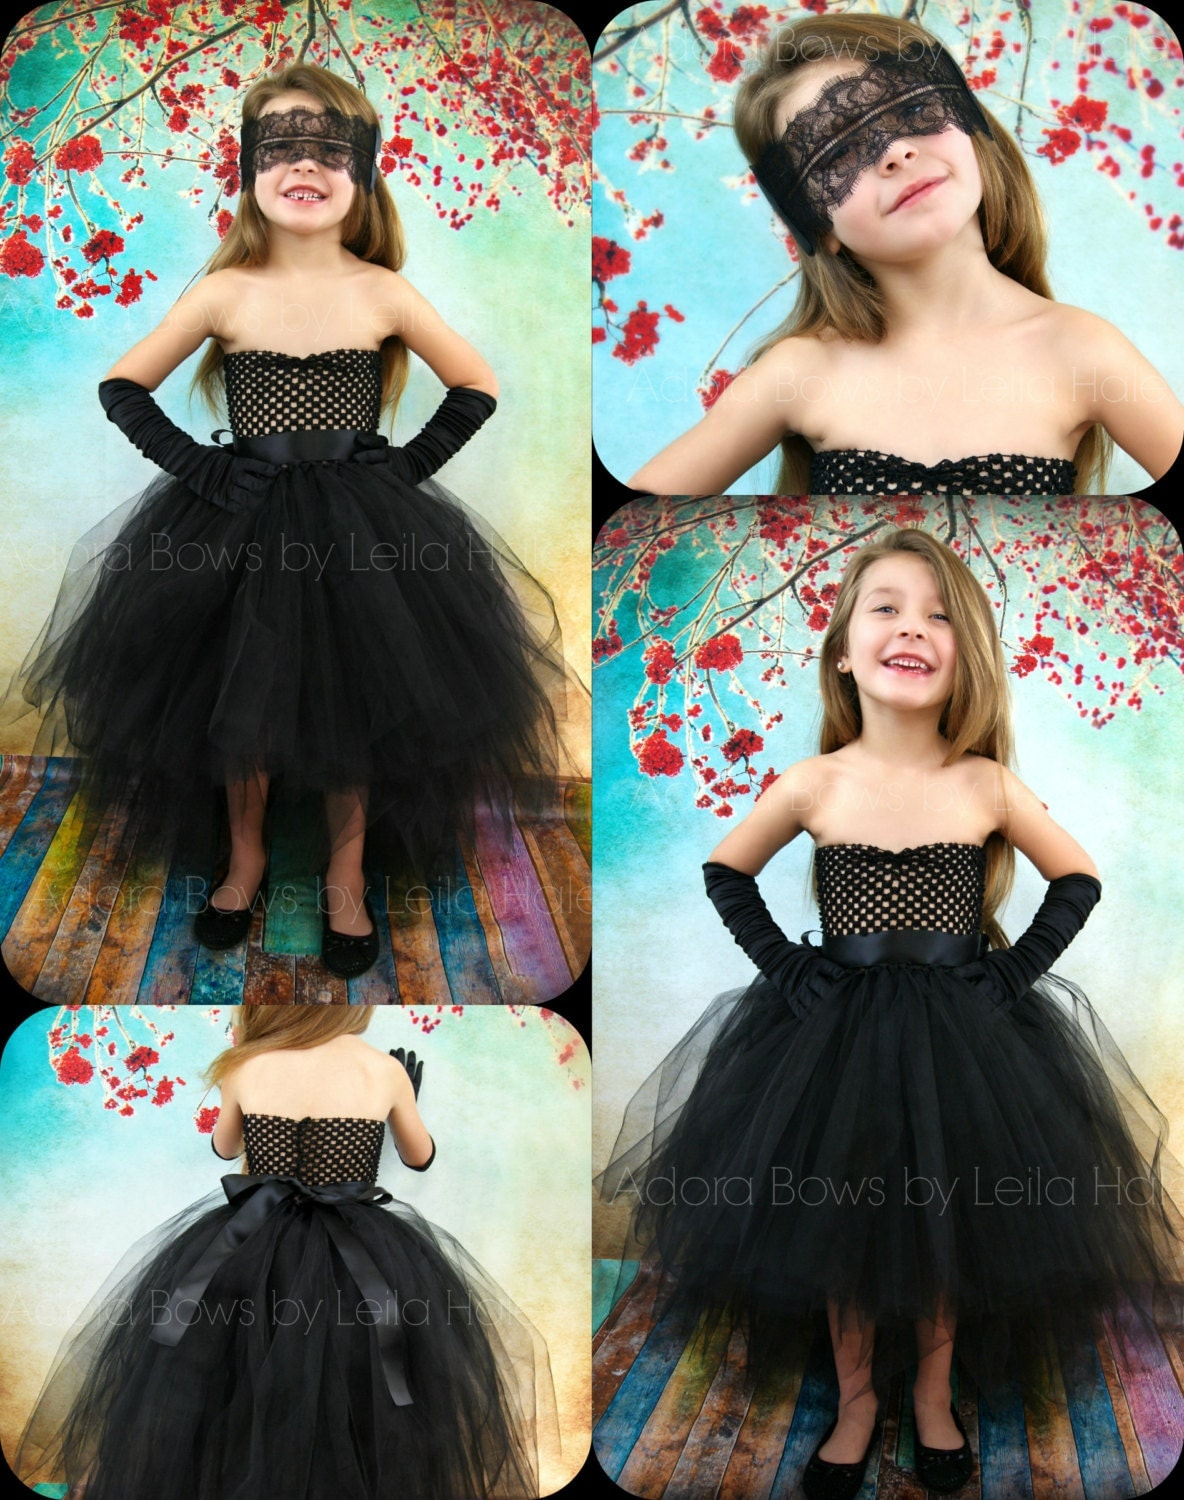 Masquerade Dresses For Little Girls | Www.pixshark.com - Images Galleries With A Bite!